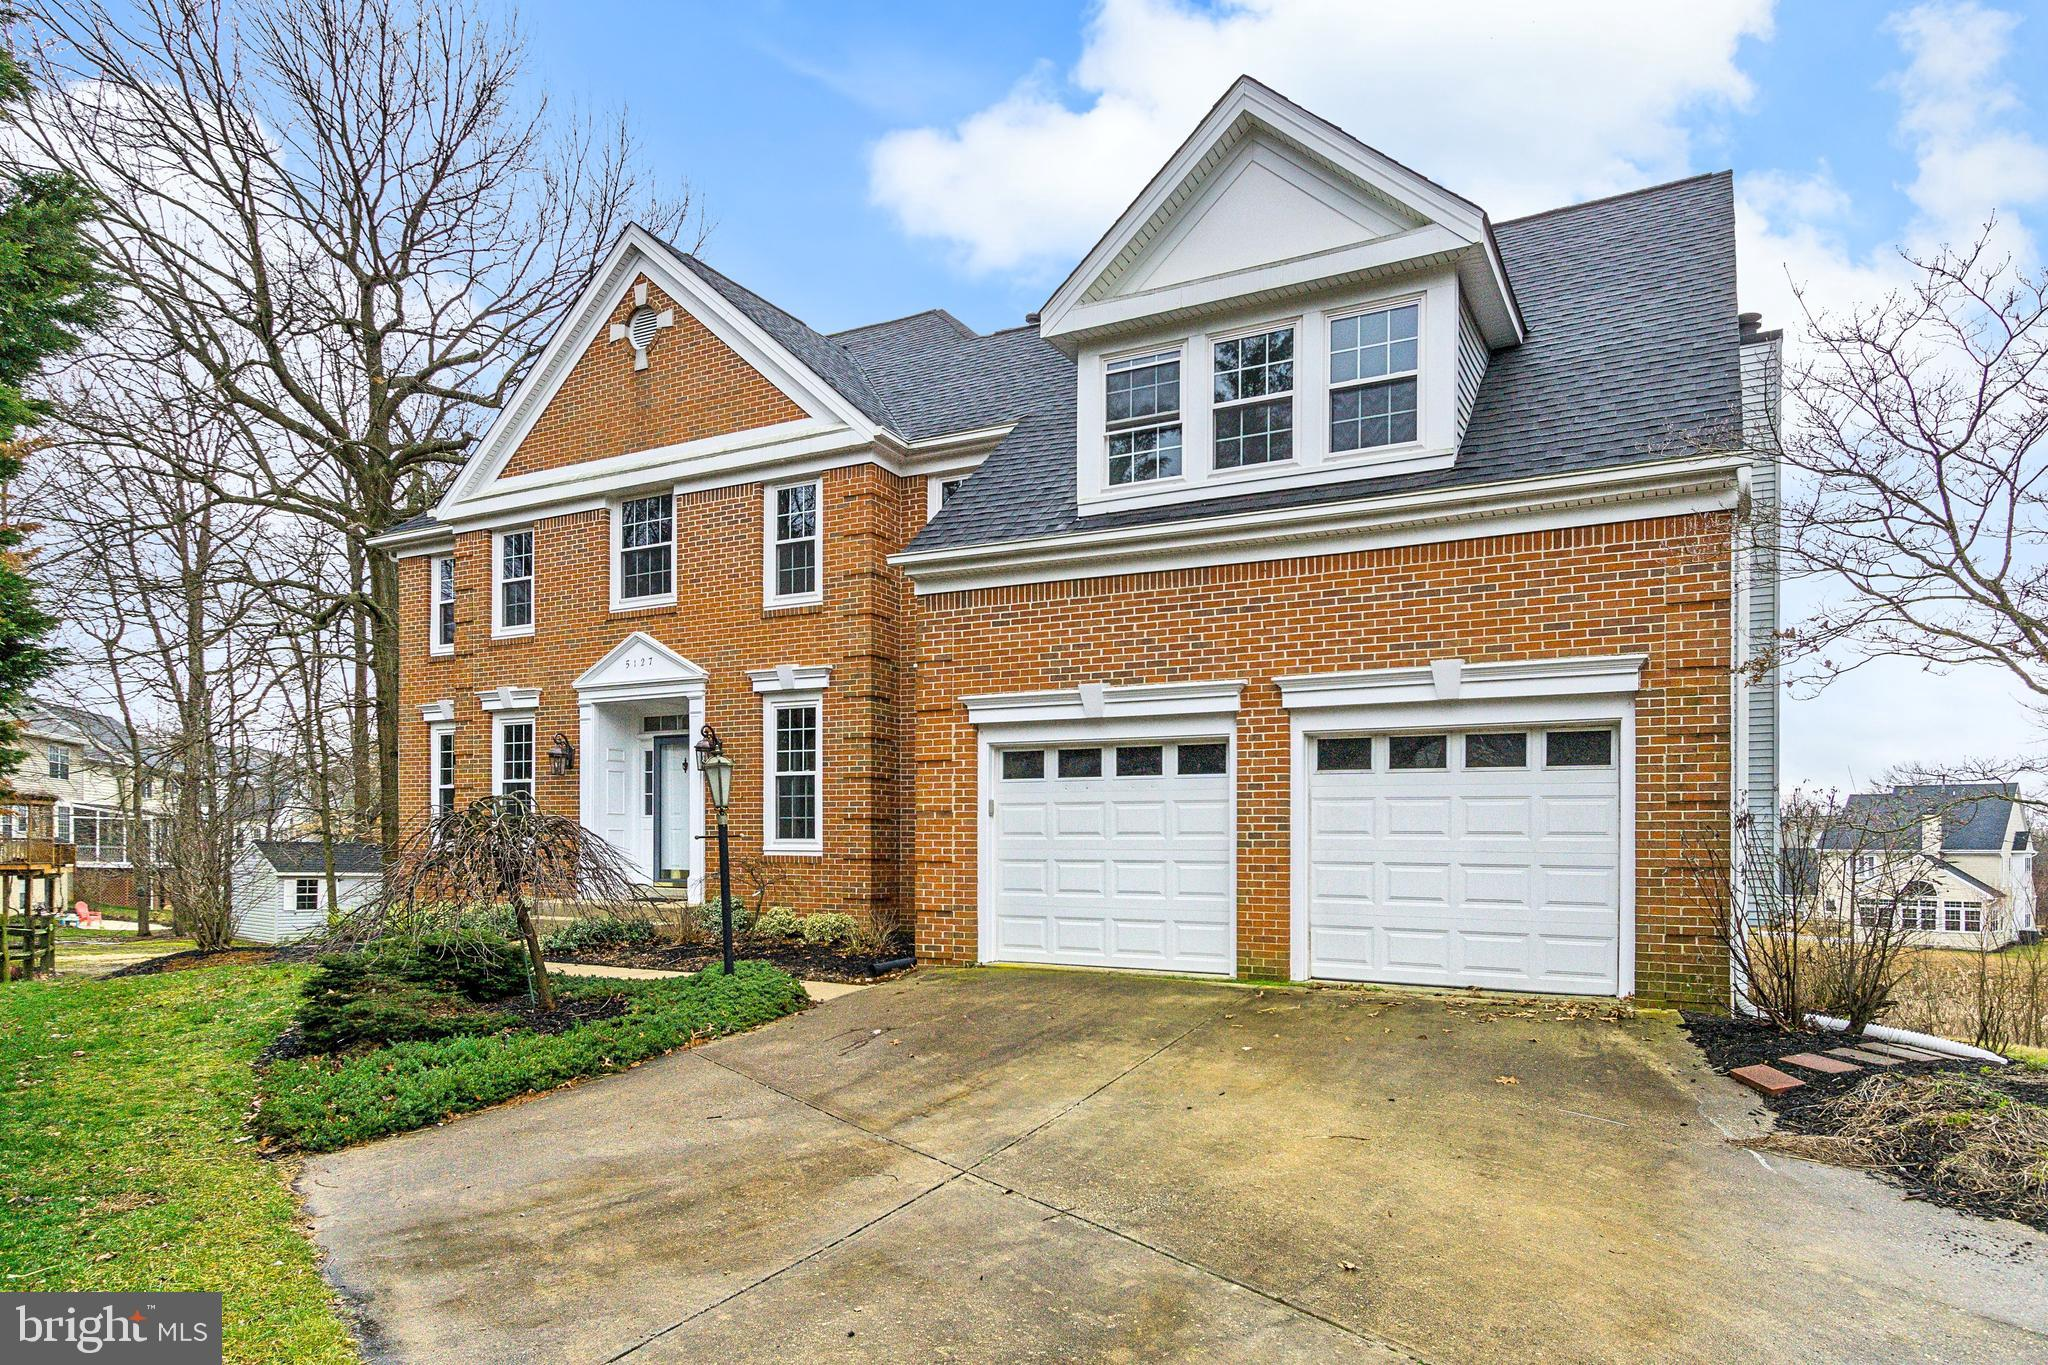 5127 CRYSTAL SPRINGS DRIVE, ELLICOTT CITY, MD 21043